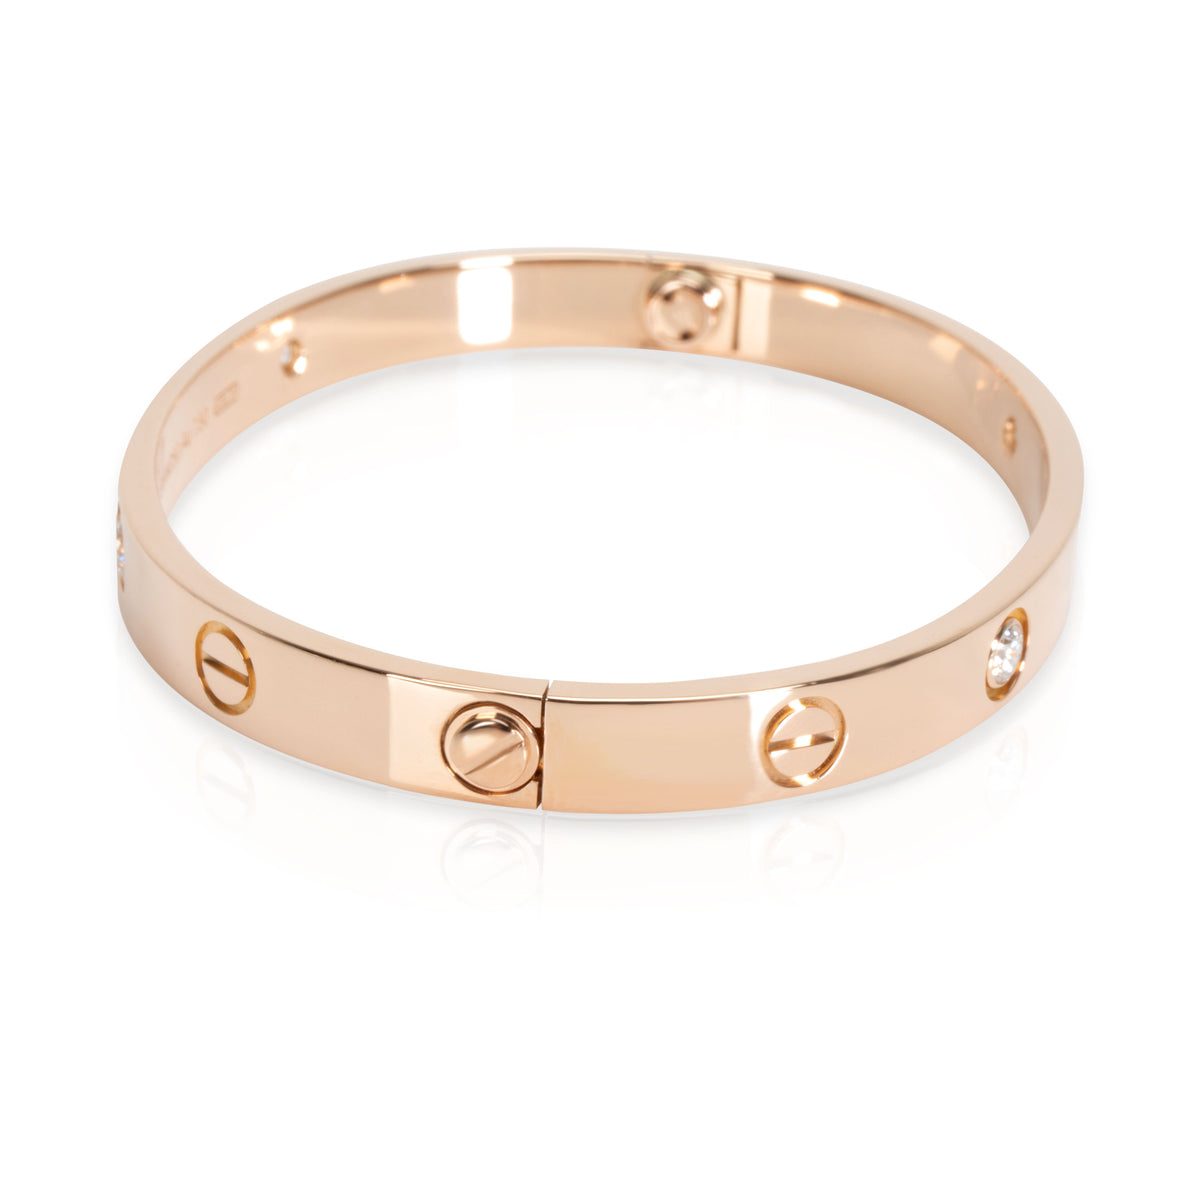 Cartier Diamond Love Bracelet in 18K Pink Gold (Size 16)